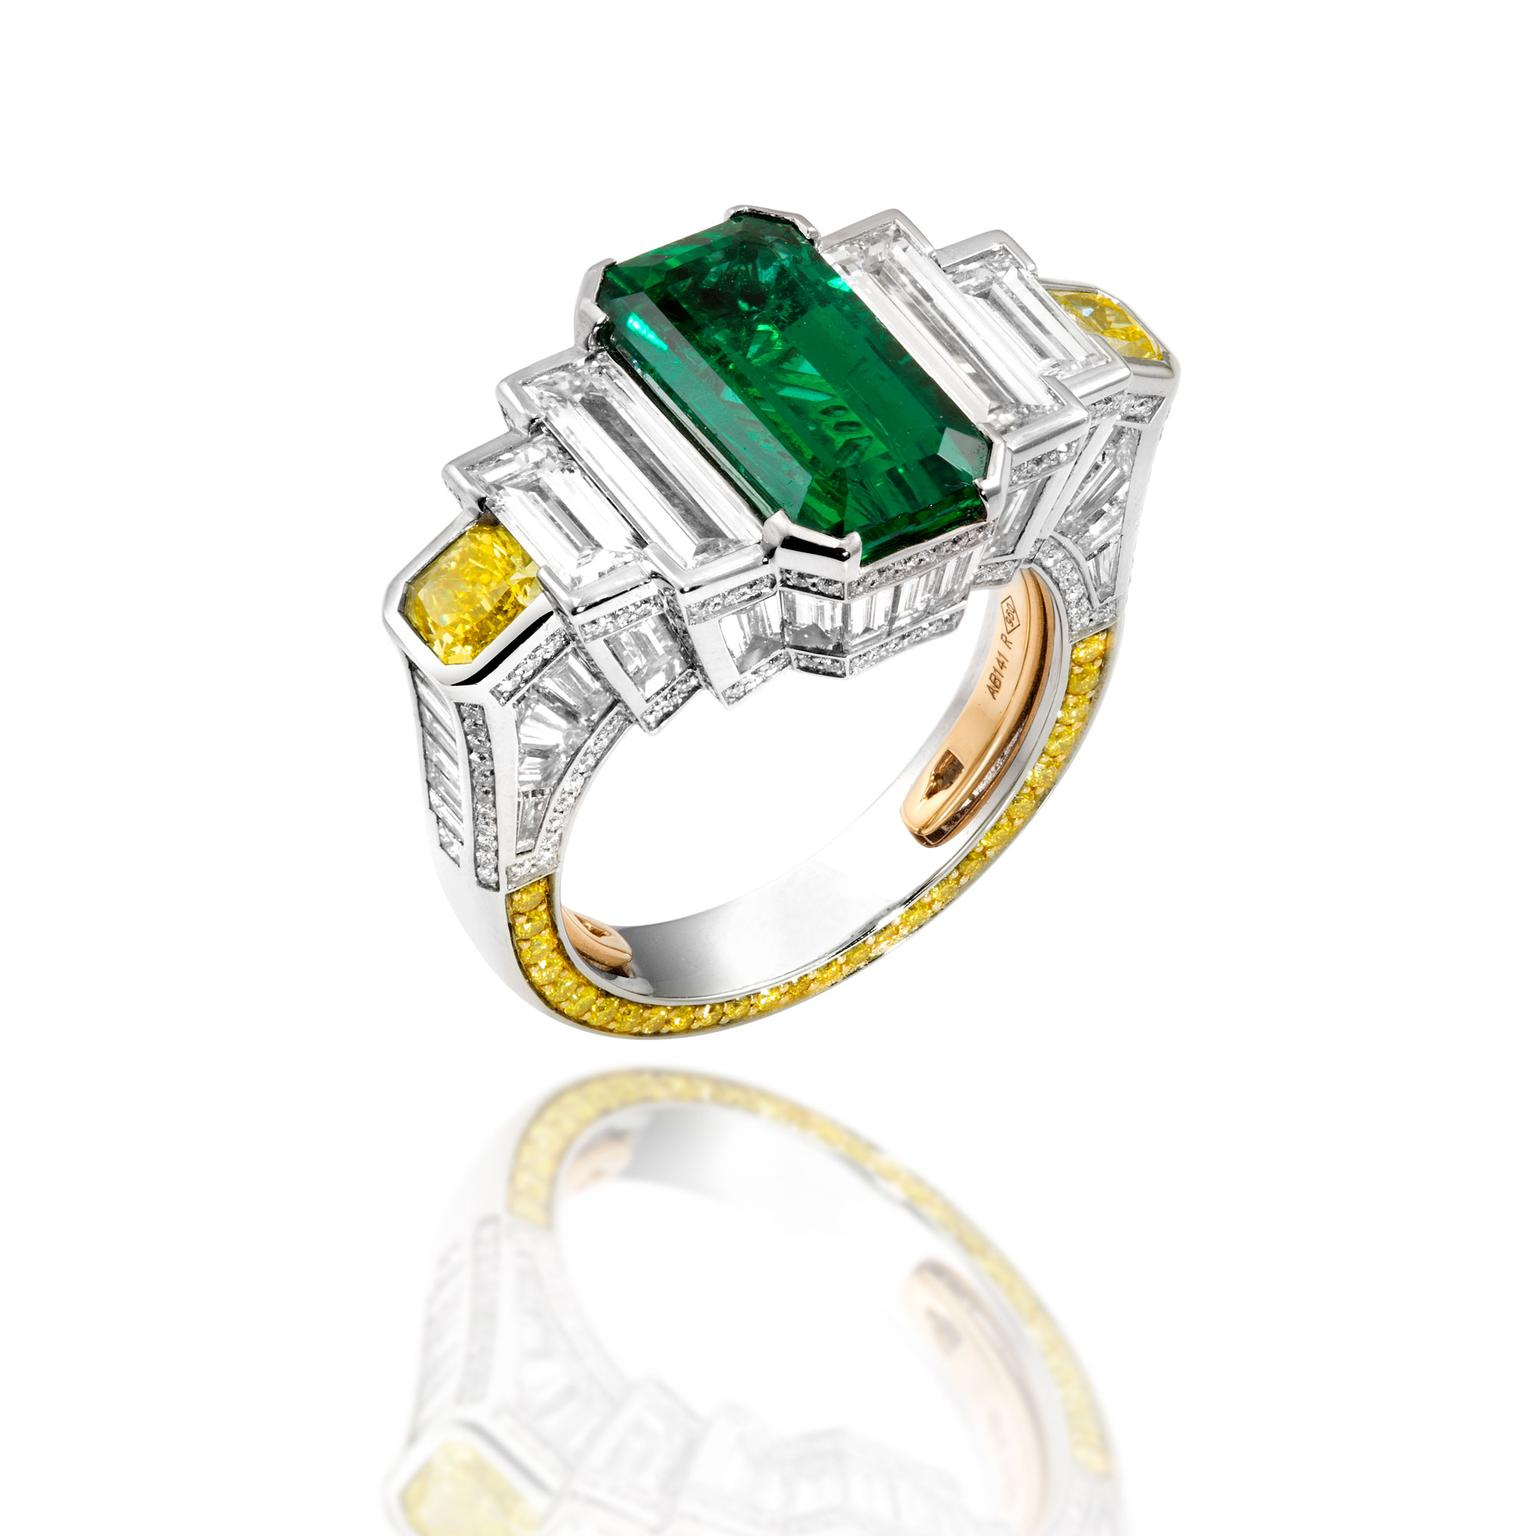 Alessio Boschi diamond and emerald ring